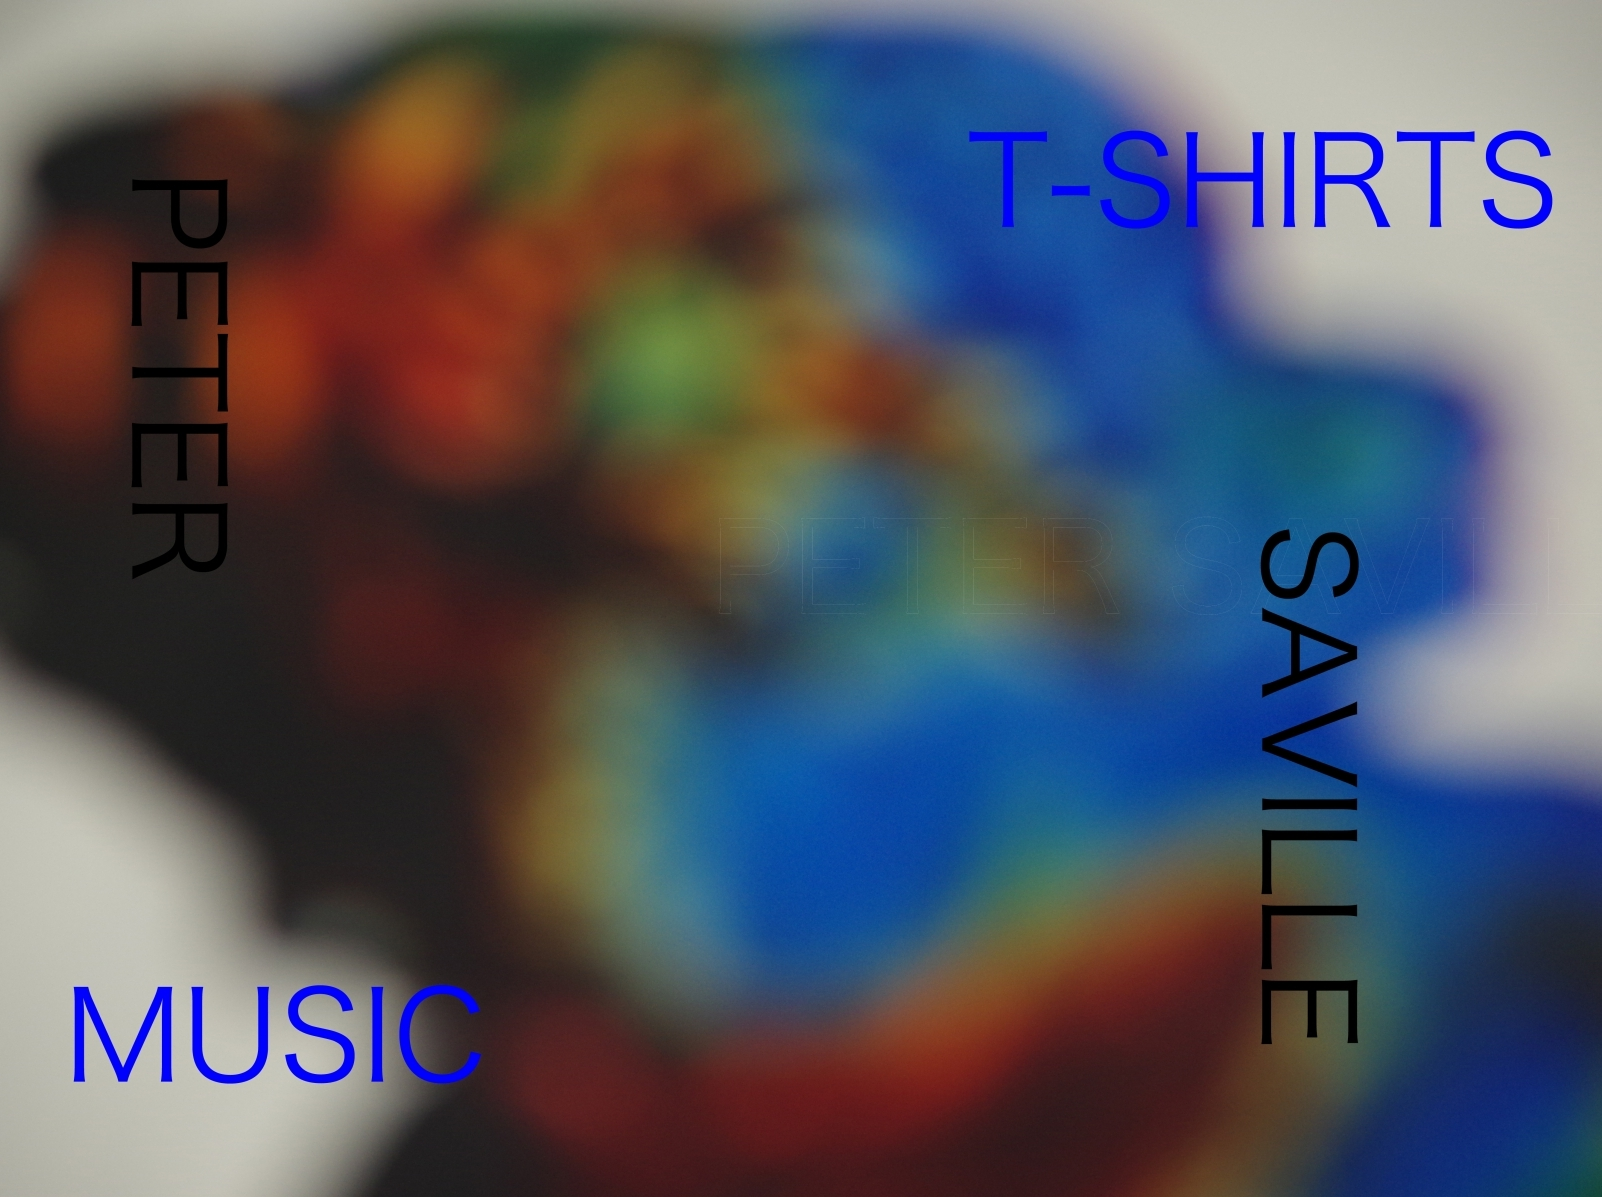 PETER SAVILLE MUSIC T-SHIRTS